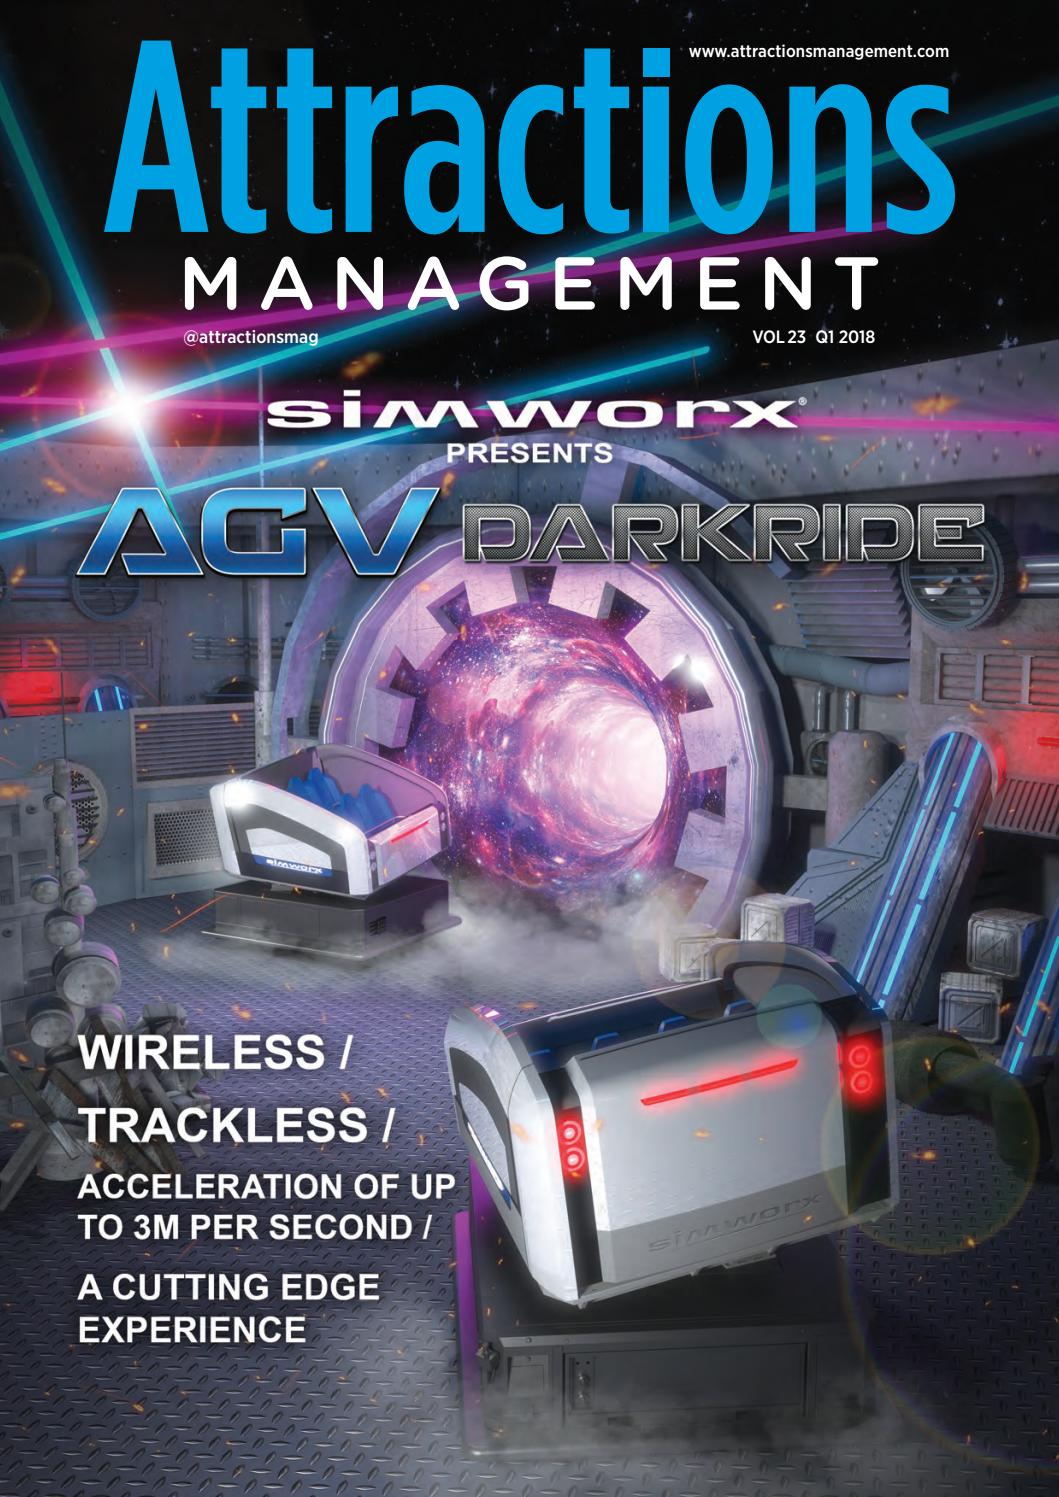 Attractions Management Issue 1 2018 By Leisure Media Issuu The Button For A Crocodile Technology C Simulation Of This Circuit